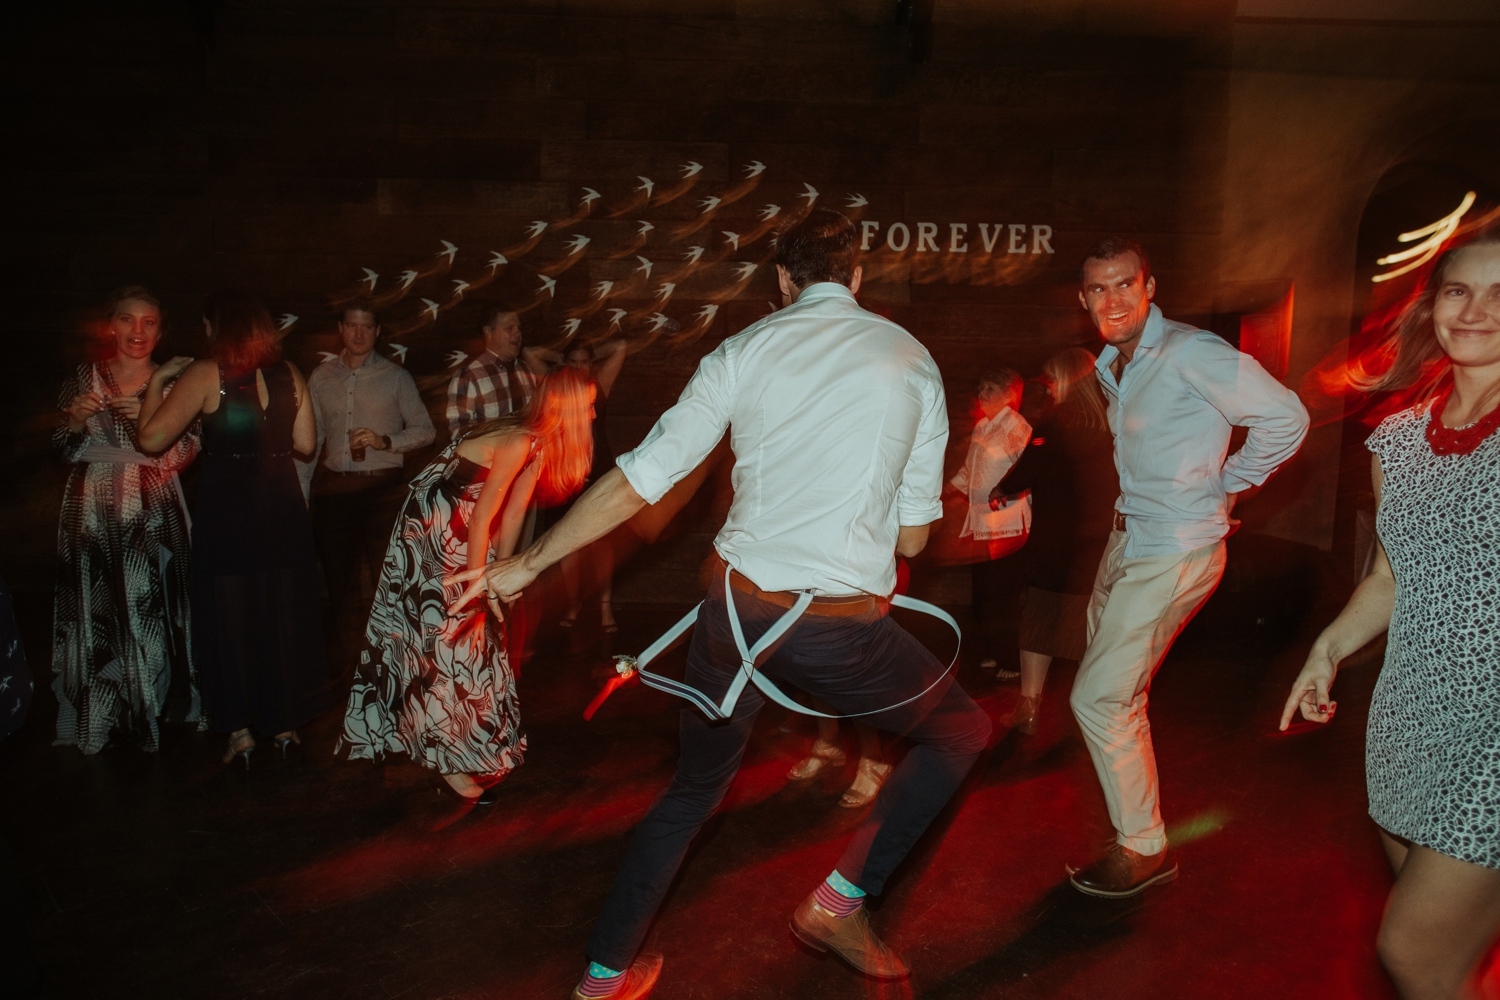 Wedding dance floor opens at the Pipe Shop in North Vancouver